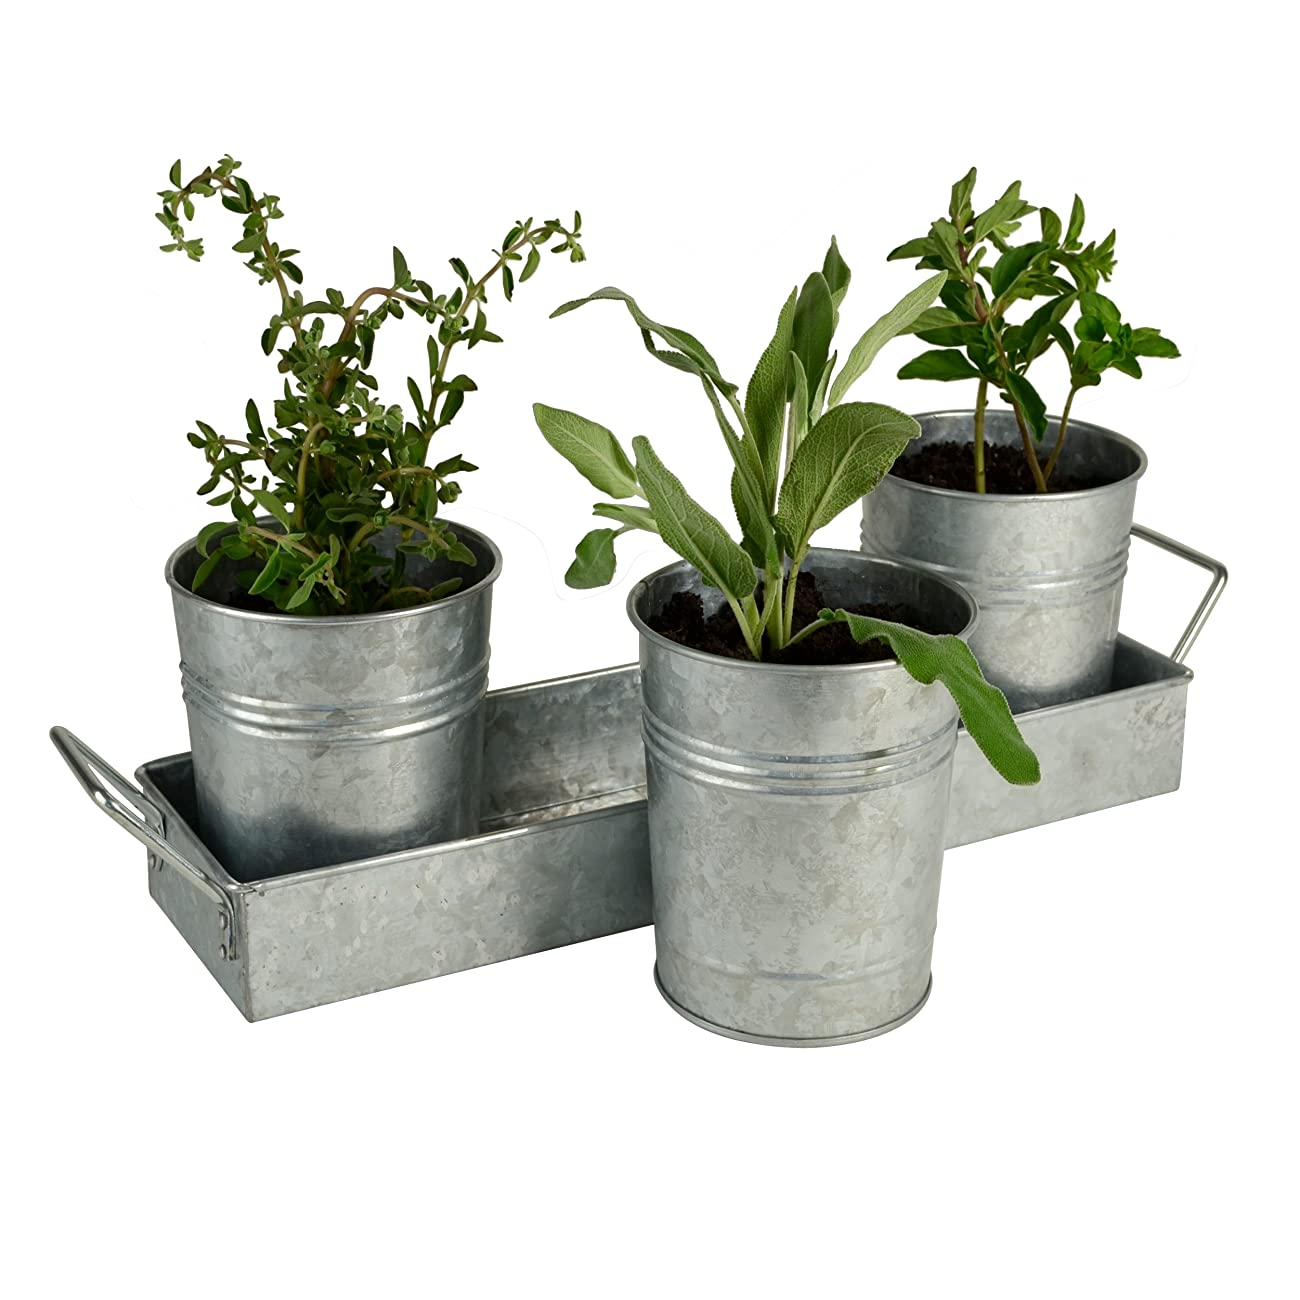 Oasis Picnic Caddy & Planter Set, Galvanized 2